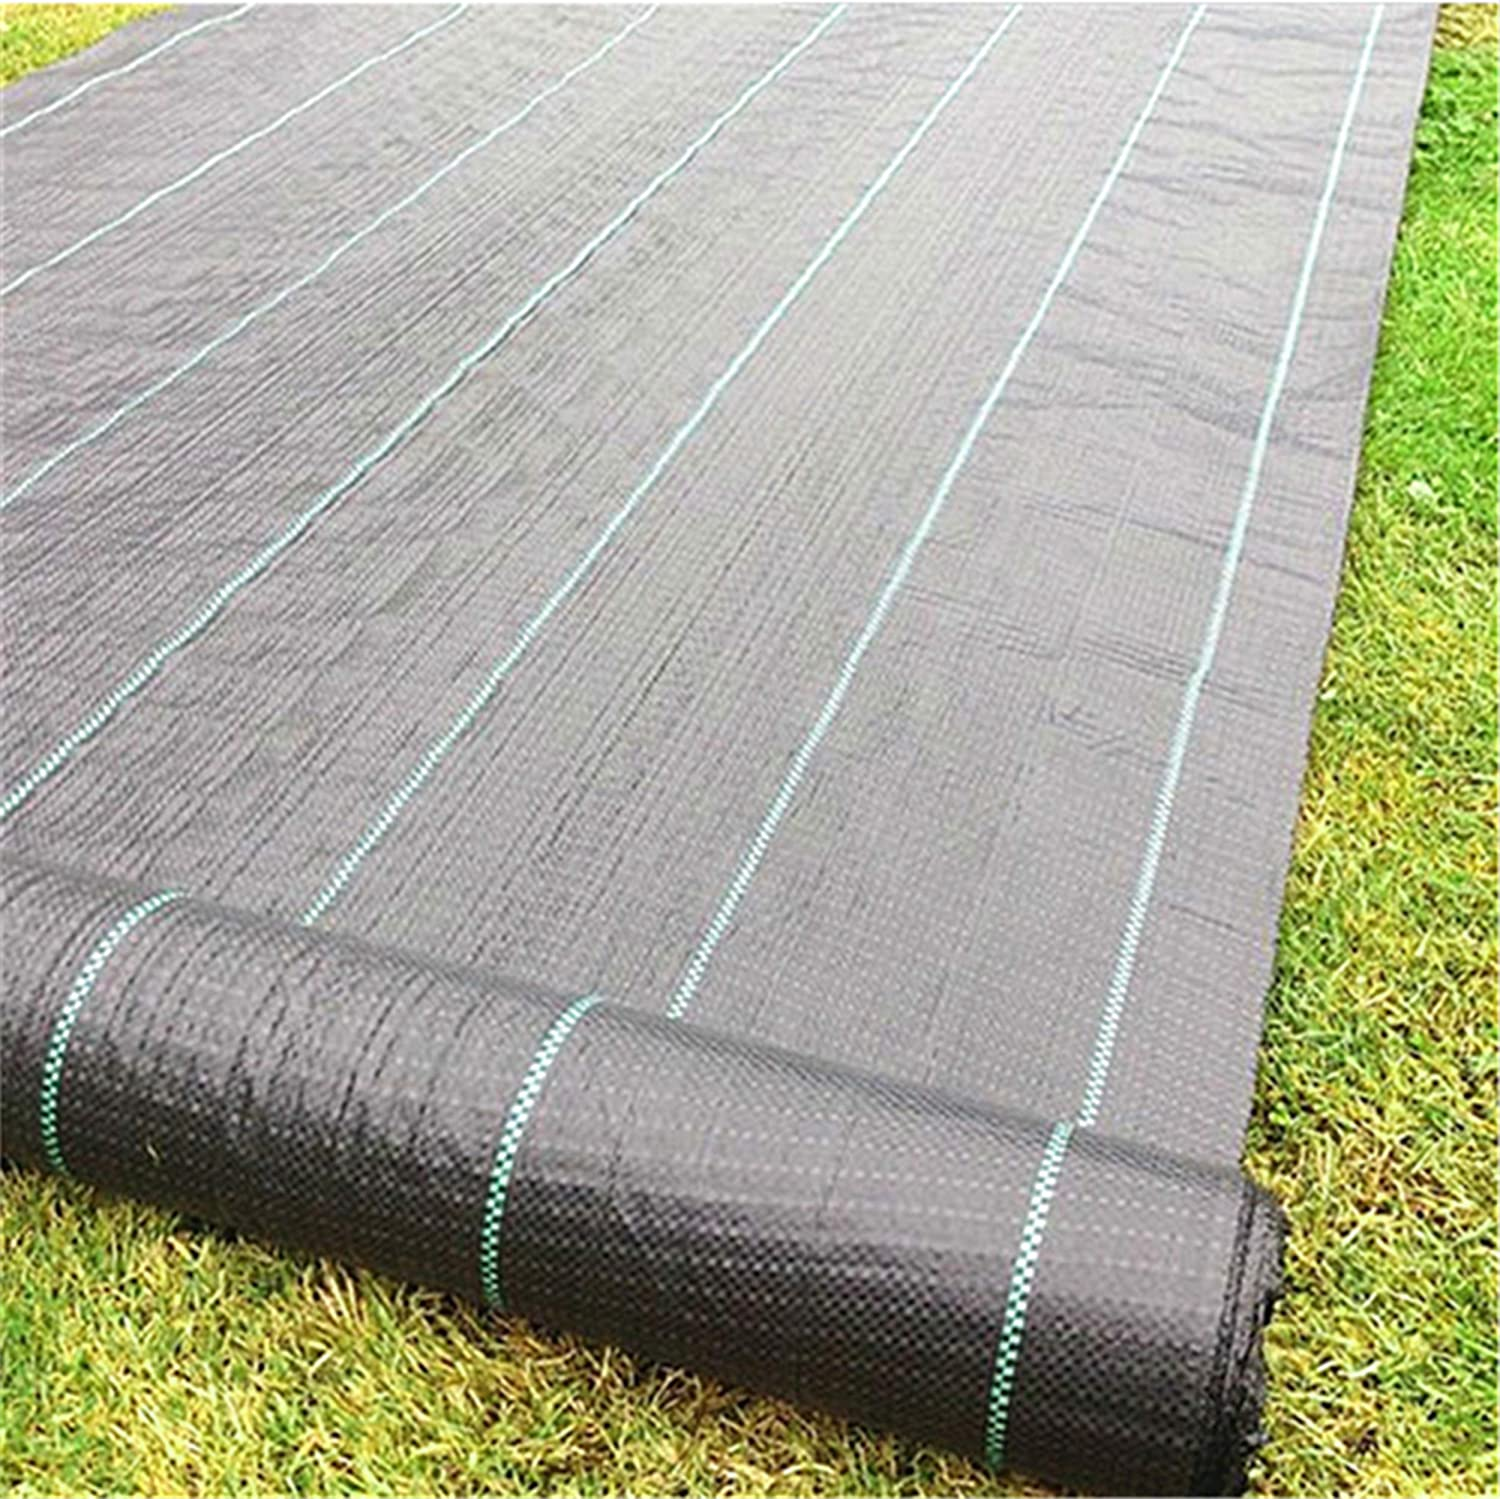 GRASSCLUB Weed Barrier Control Woven Garden Weed Landscape Fabric Heavy Duty Ground Cover 6.5ft x 32ft (208 Sq ft)